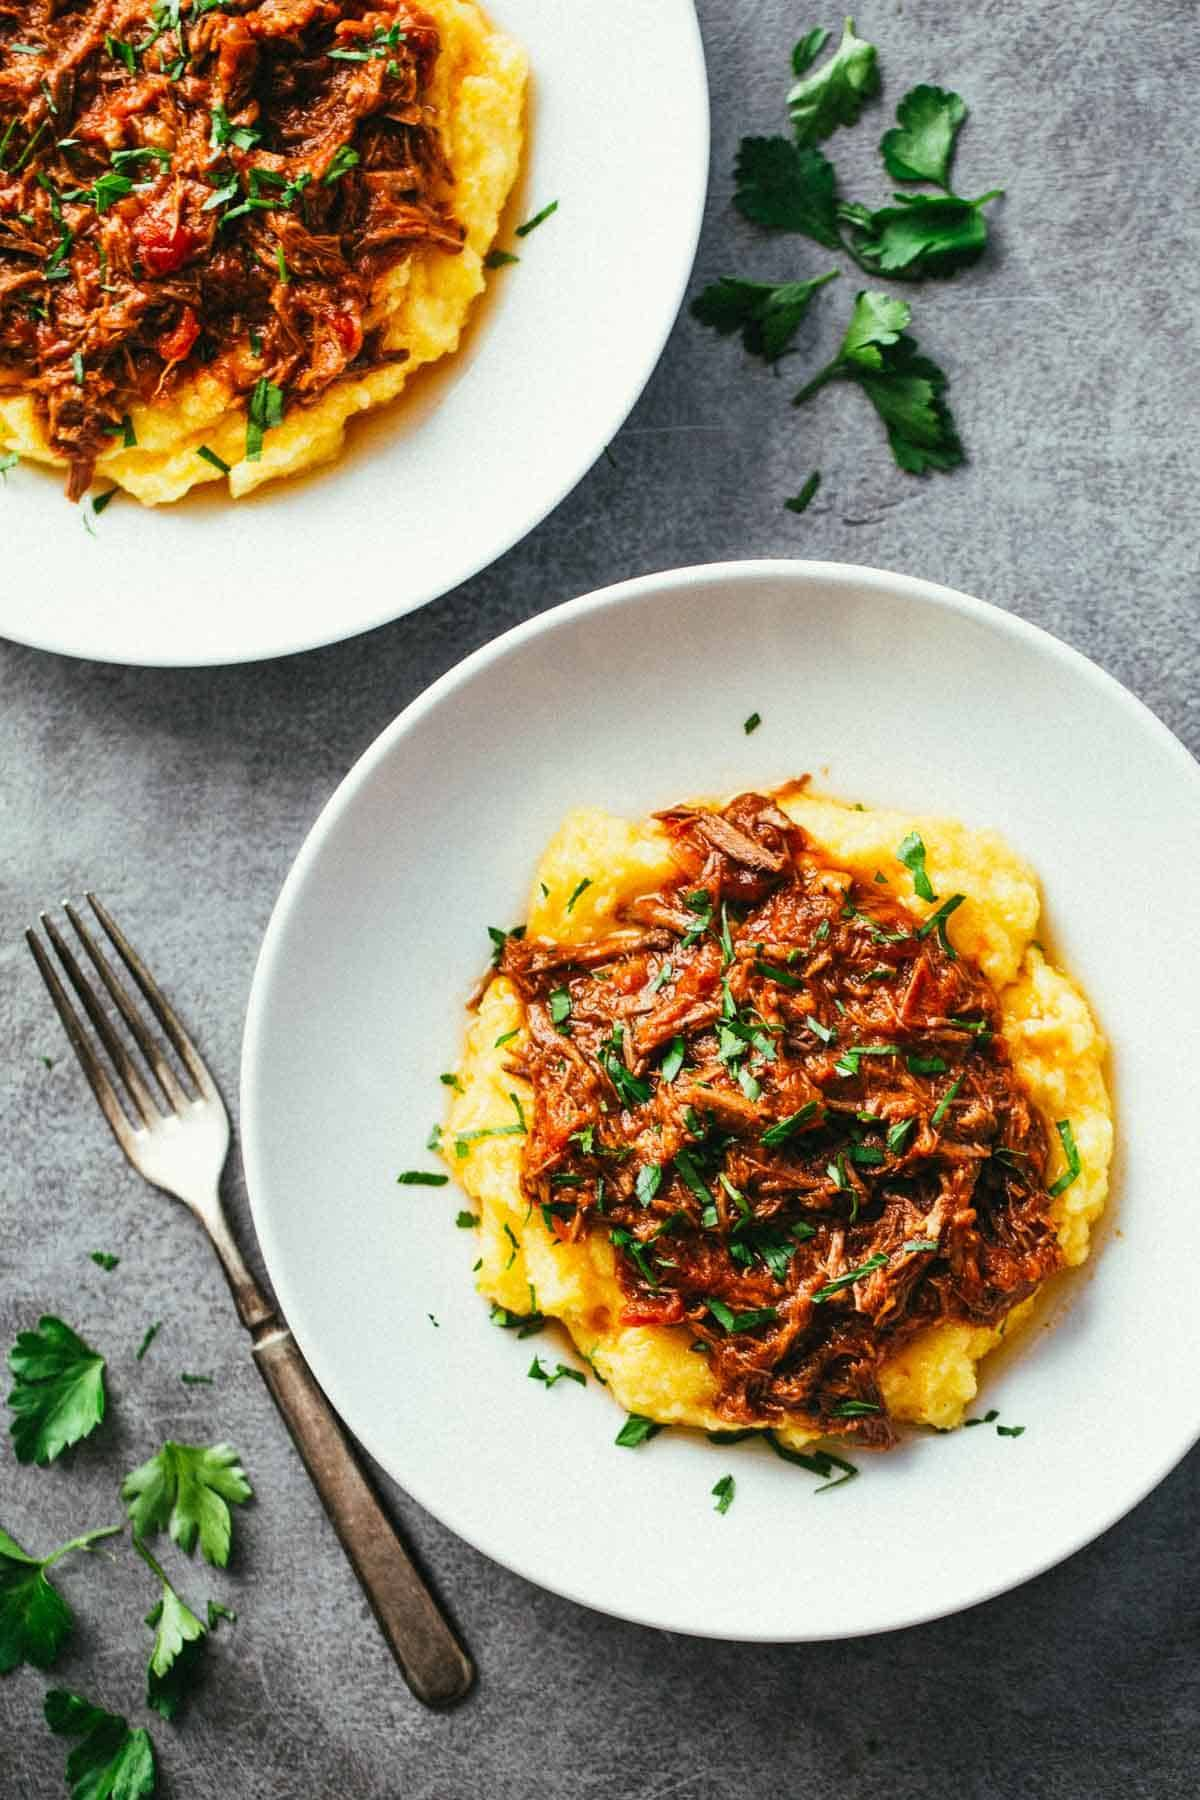 Slow-Cooker Monday: Polenta recommend